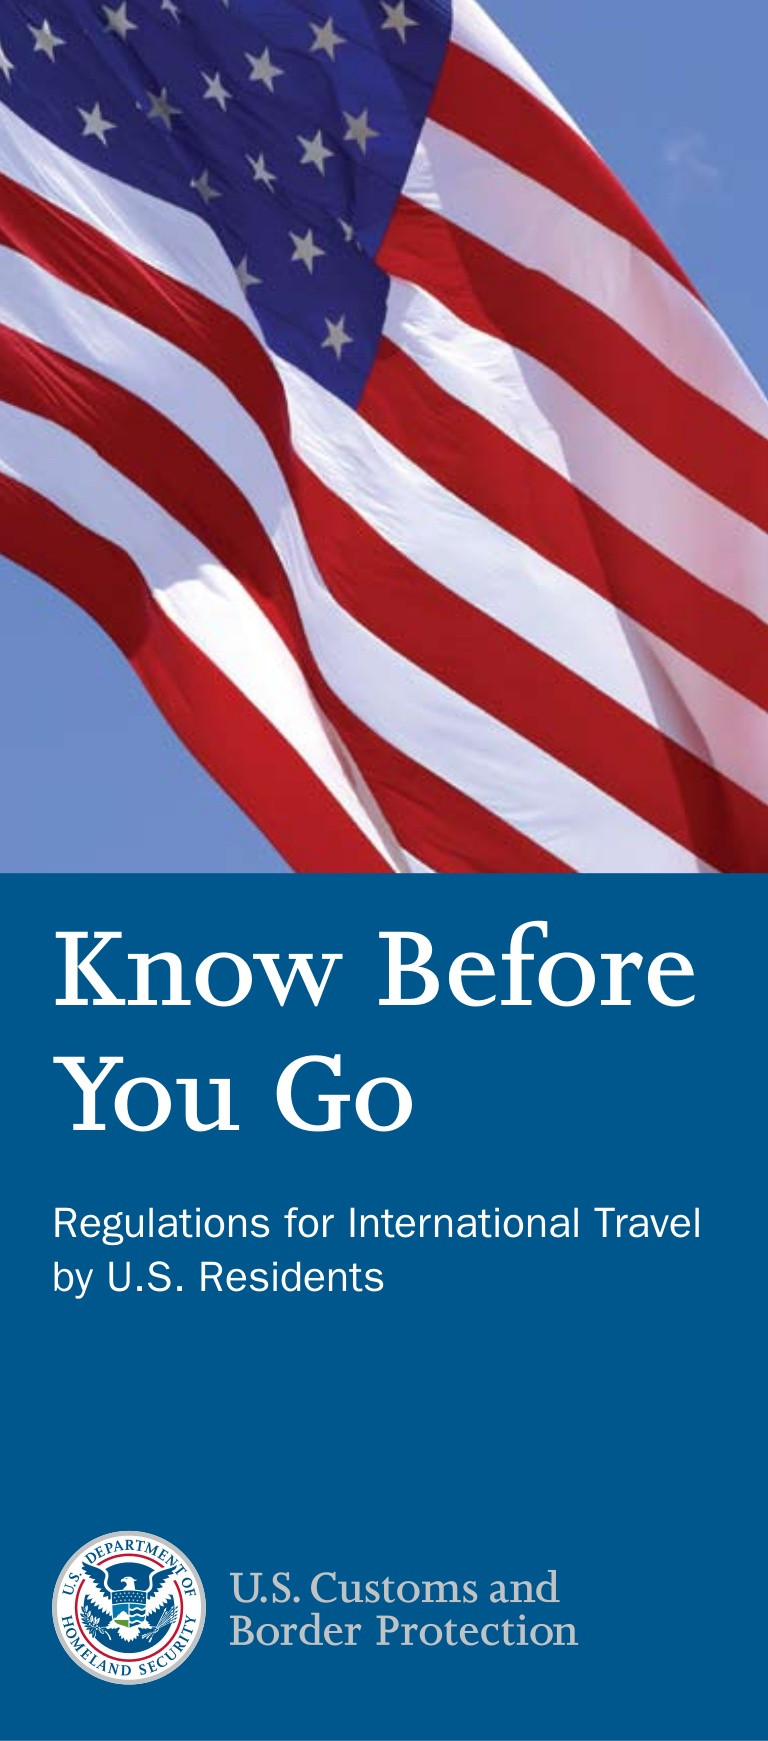 knowbeforeyougoregulations app01 thumbnail 4